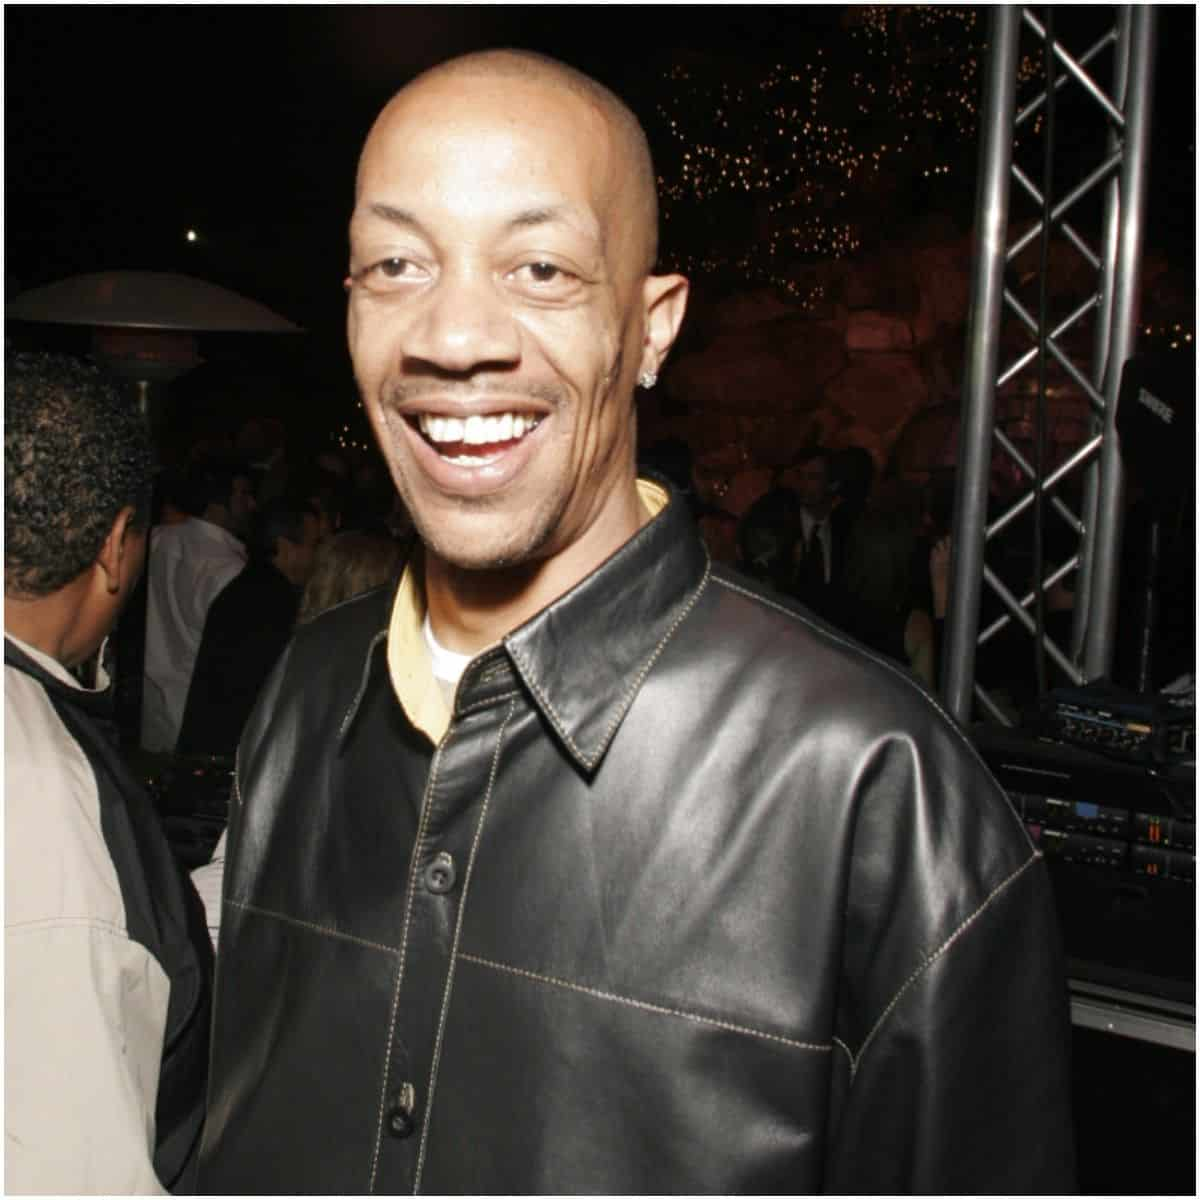 WHAT IS THE NET WORTH OF DJ Pooh